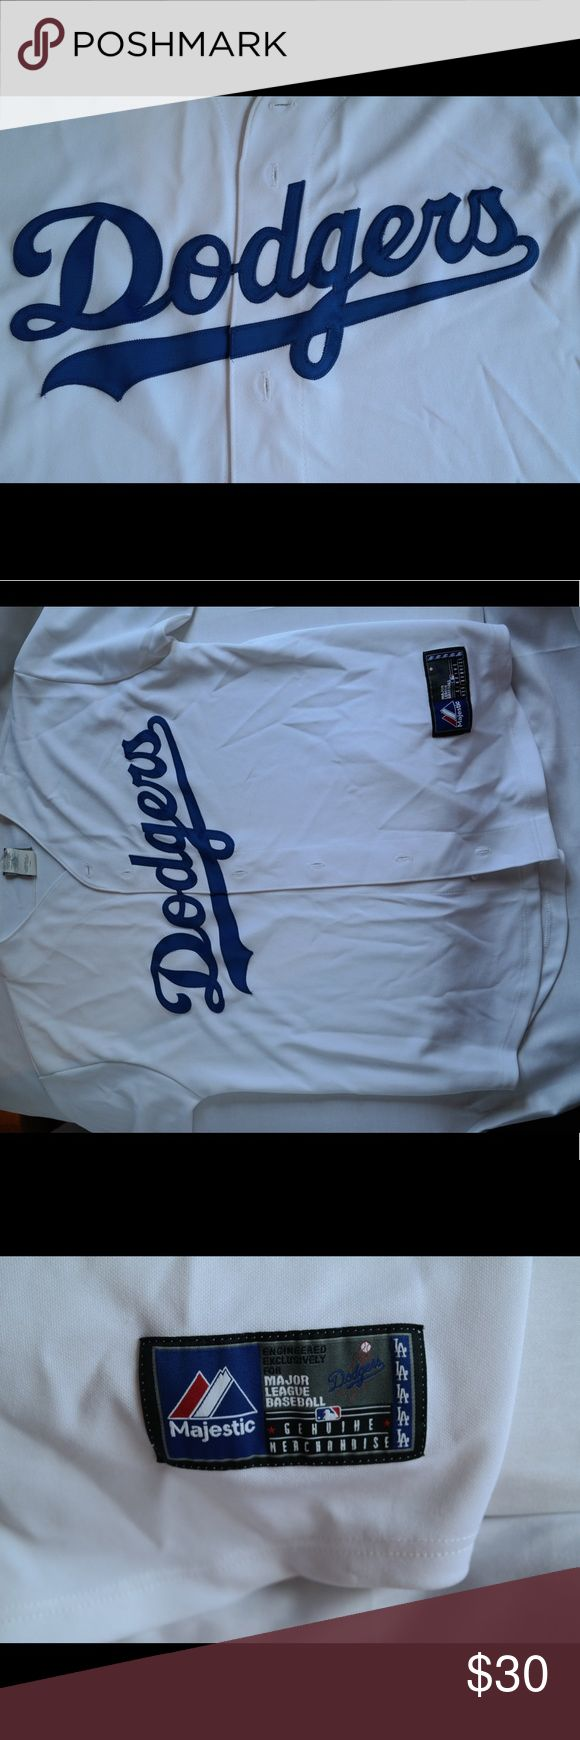 Dodgers' jersey - Men's Large Serious Dodger fans will love this jersey! Purchased at Dodger Stadium, fabric is thick and will keep you warm in the playoffs! Shirts Tees - Short Sleeve